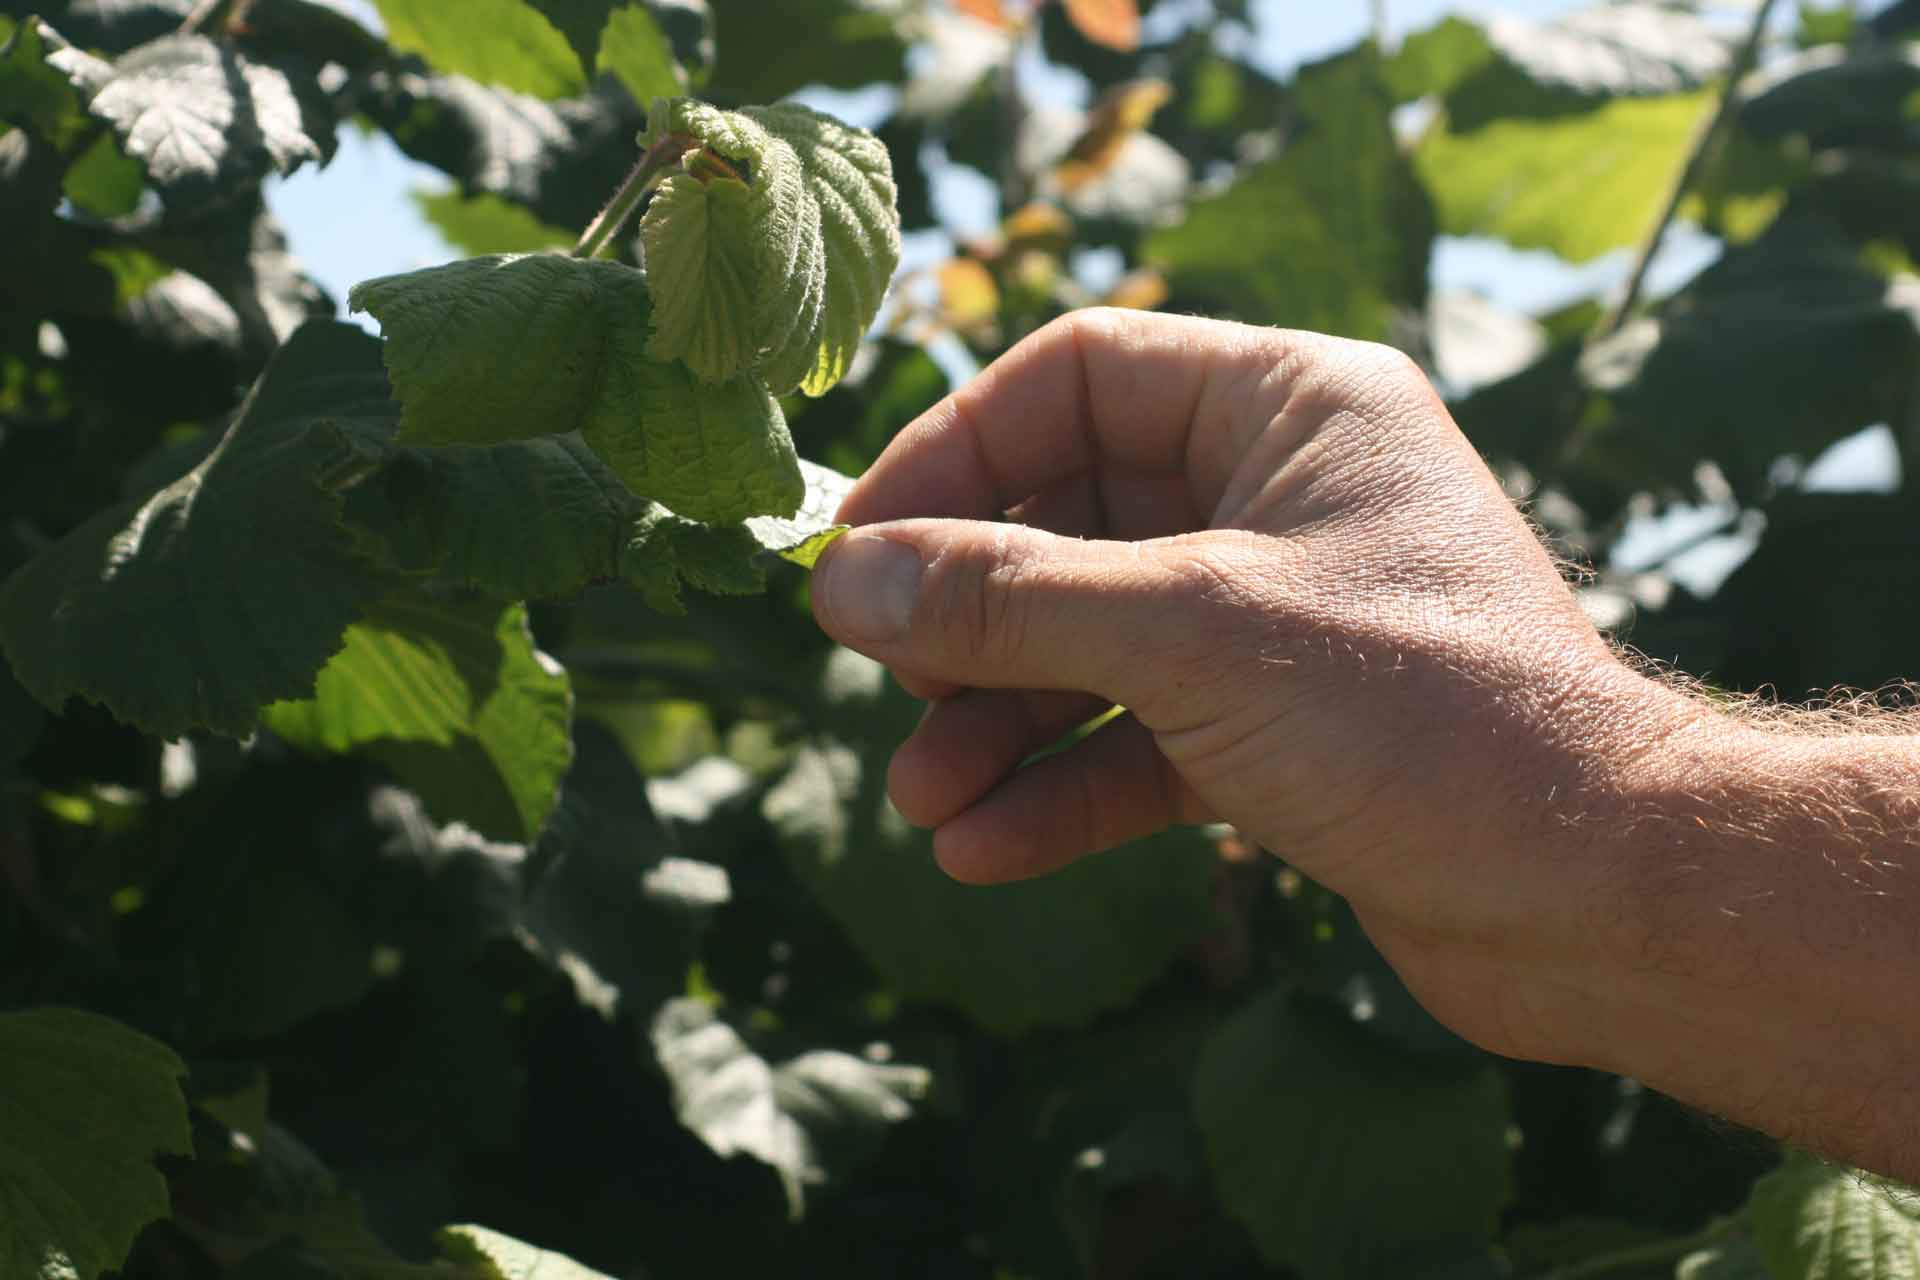 Telly Wirth inspects new growth on one of his hazelnut trees.